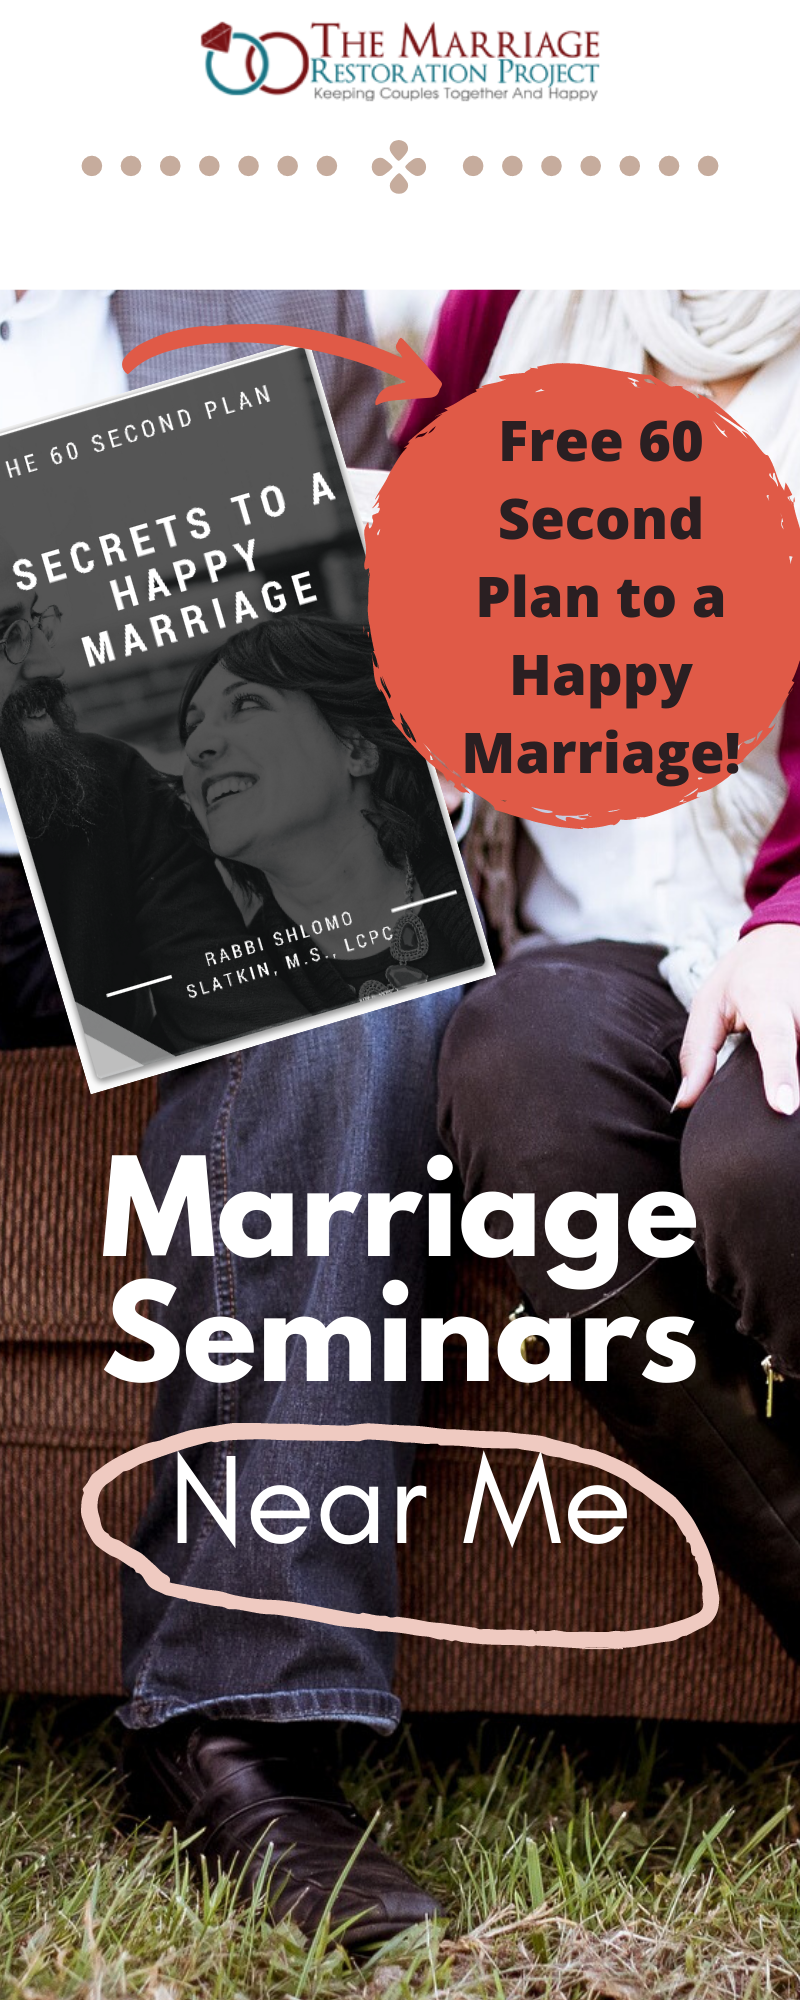 Imago Weekend Marriage Retreat Online Virtual Group Couples Therapy Workshops In 2020 Marriage Retreats Marriage Seminars Couples Therapy